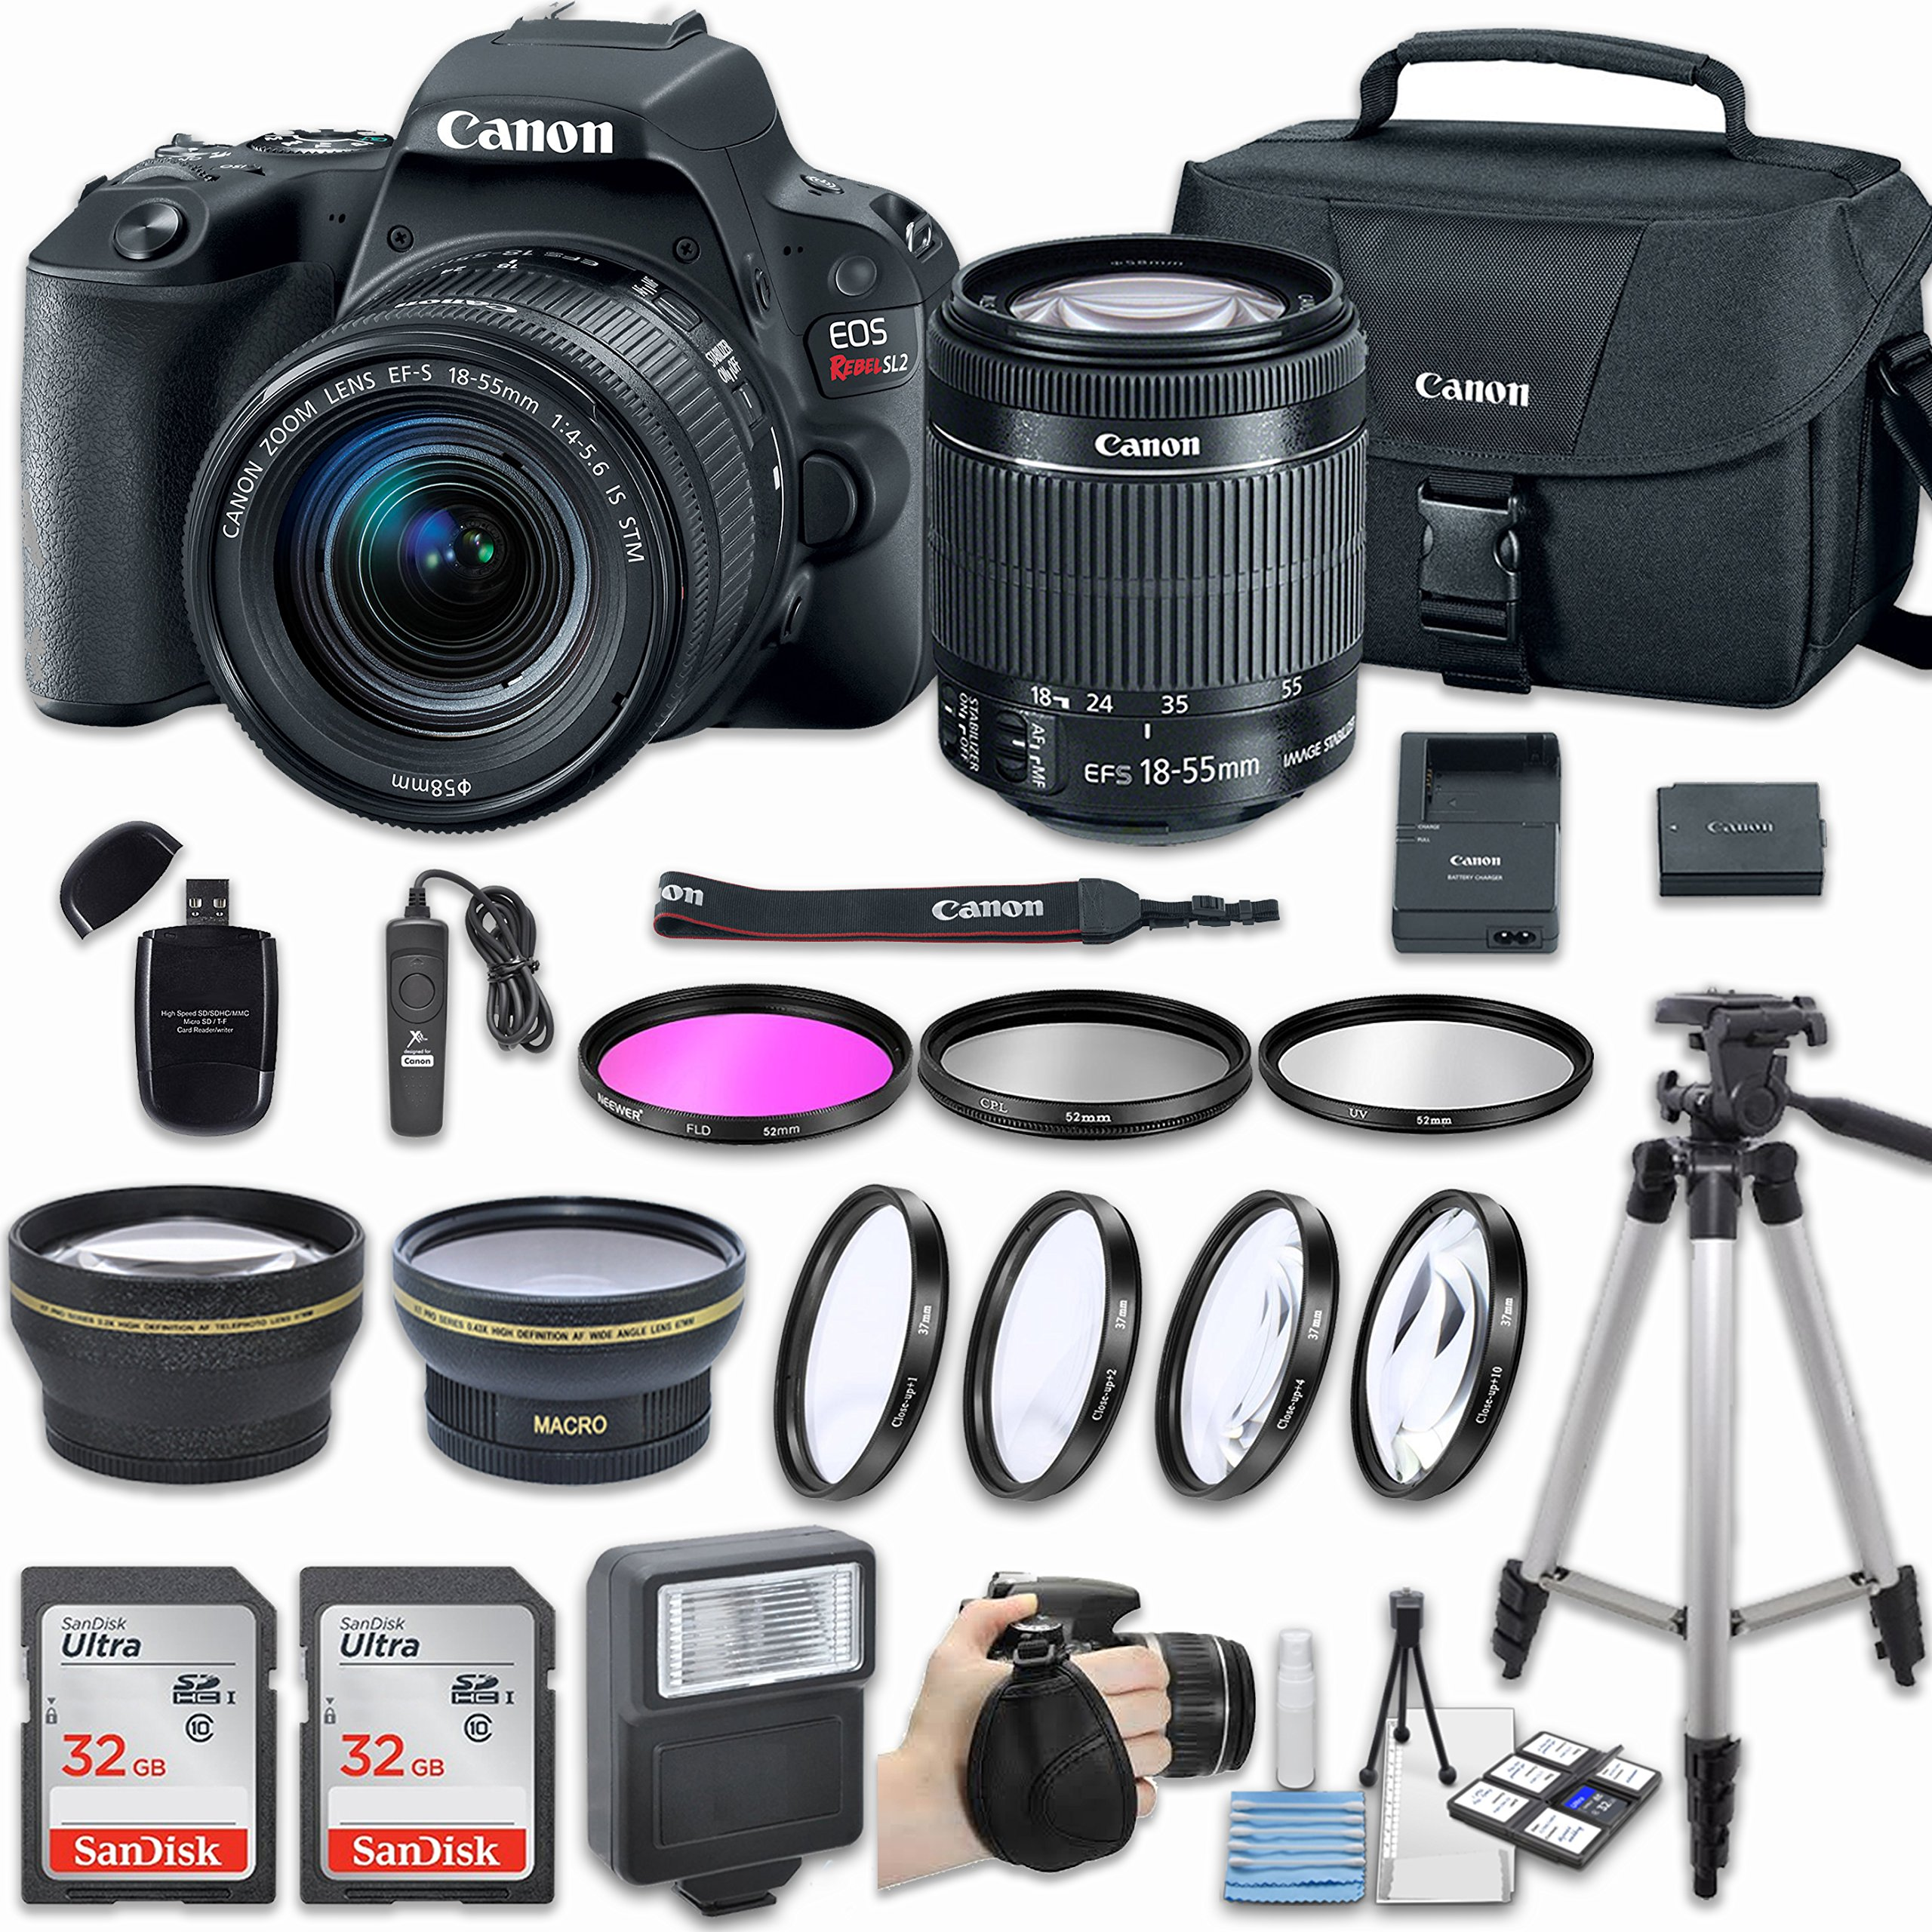 Canon EOS Rebel SL2 DSLR Camera with EF-S 18-55mm f/4-5.6 IS STM Lens & Includes 58mm HD Wide Angle Lens + 2.2x Telephoto + 2Pcs 32GB Sandisk SD Memory + Filter & Macro Kit + More Accessories by Canon